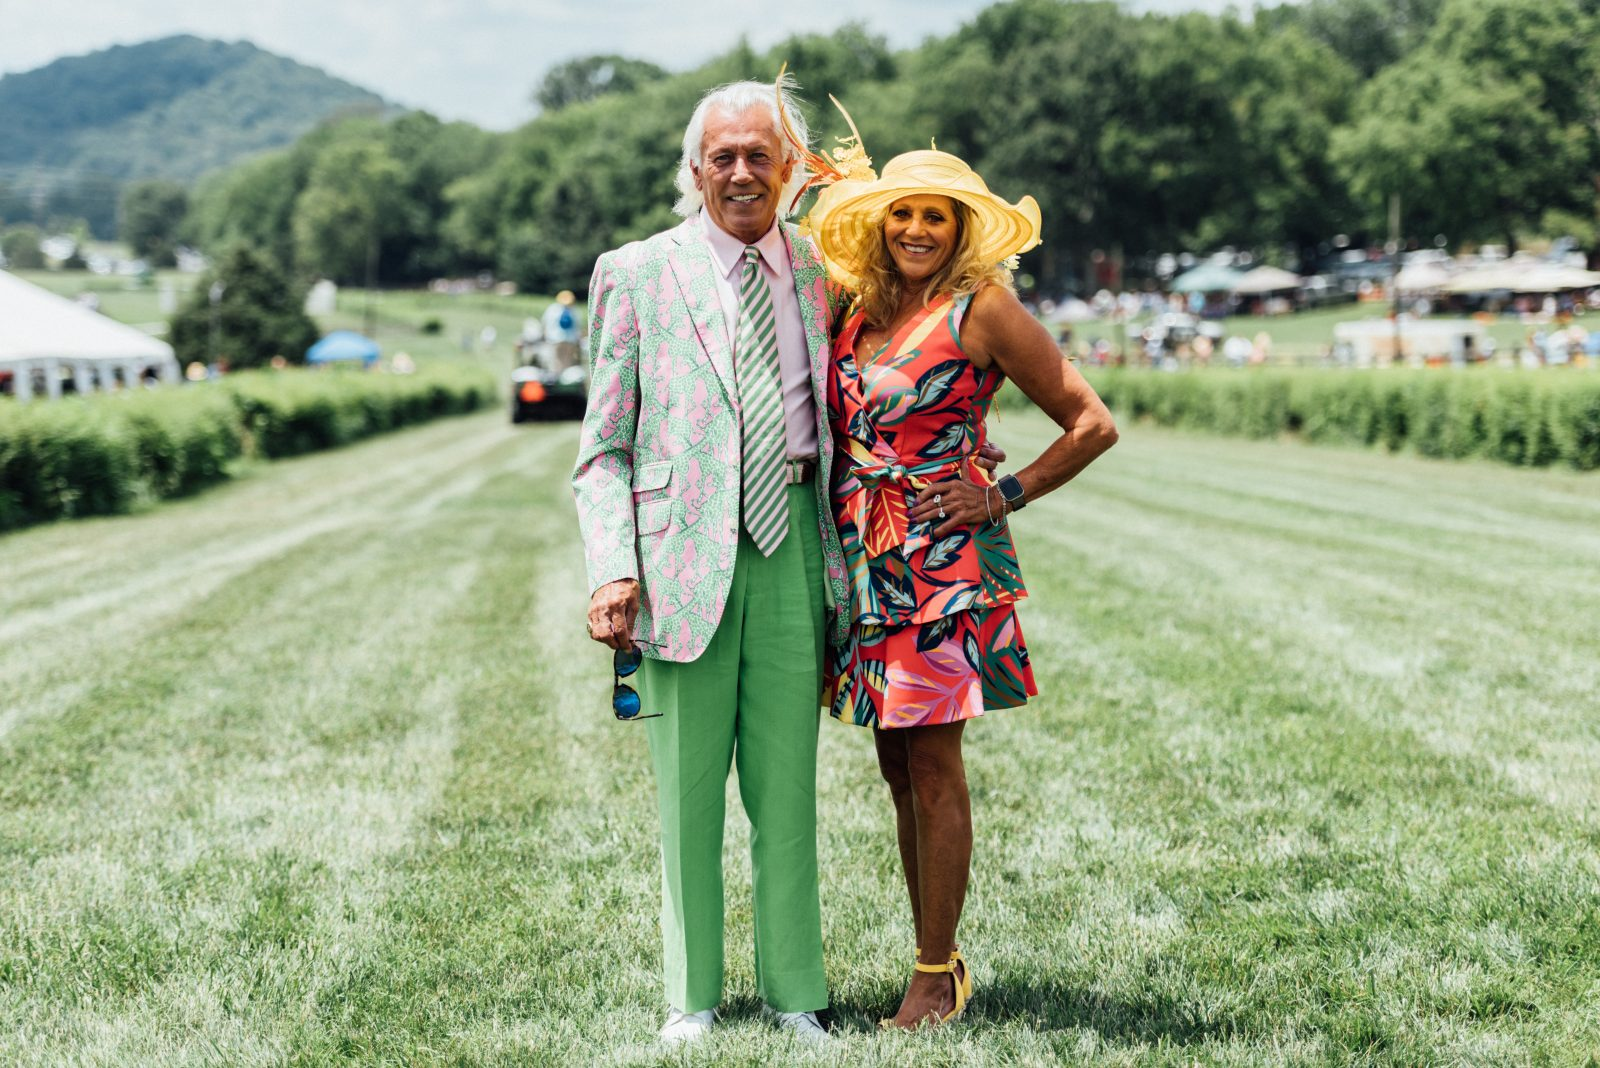 Pat Ryan and Kim Willis at the 2021 Steeplechase event featured in the Nashville Edit